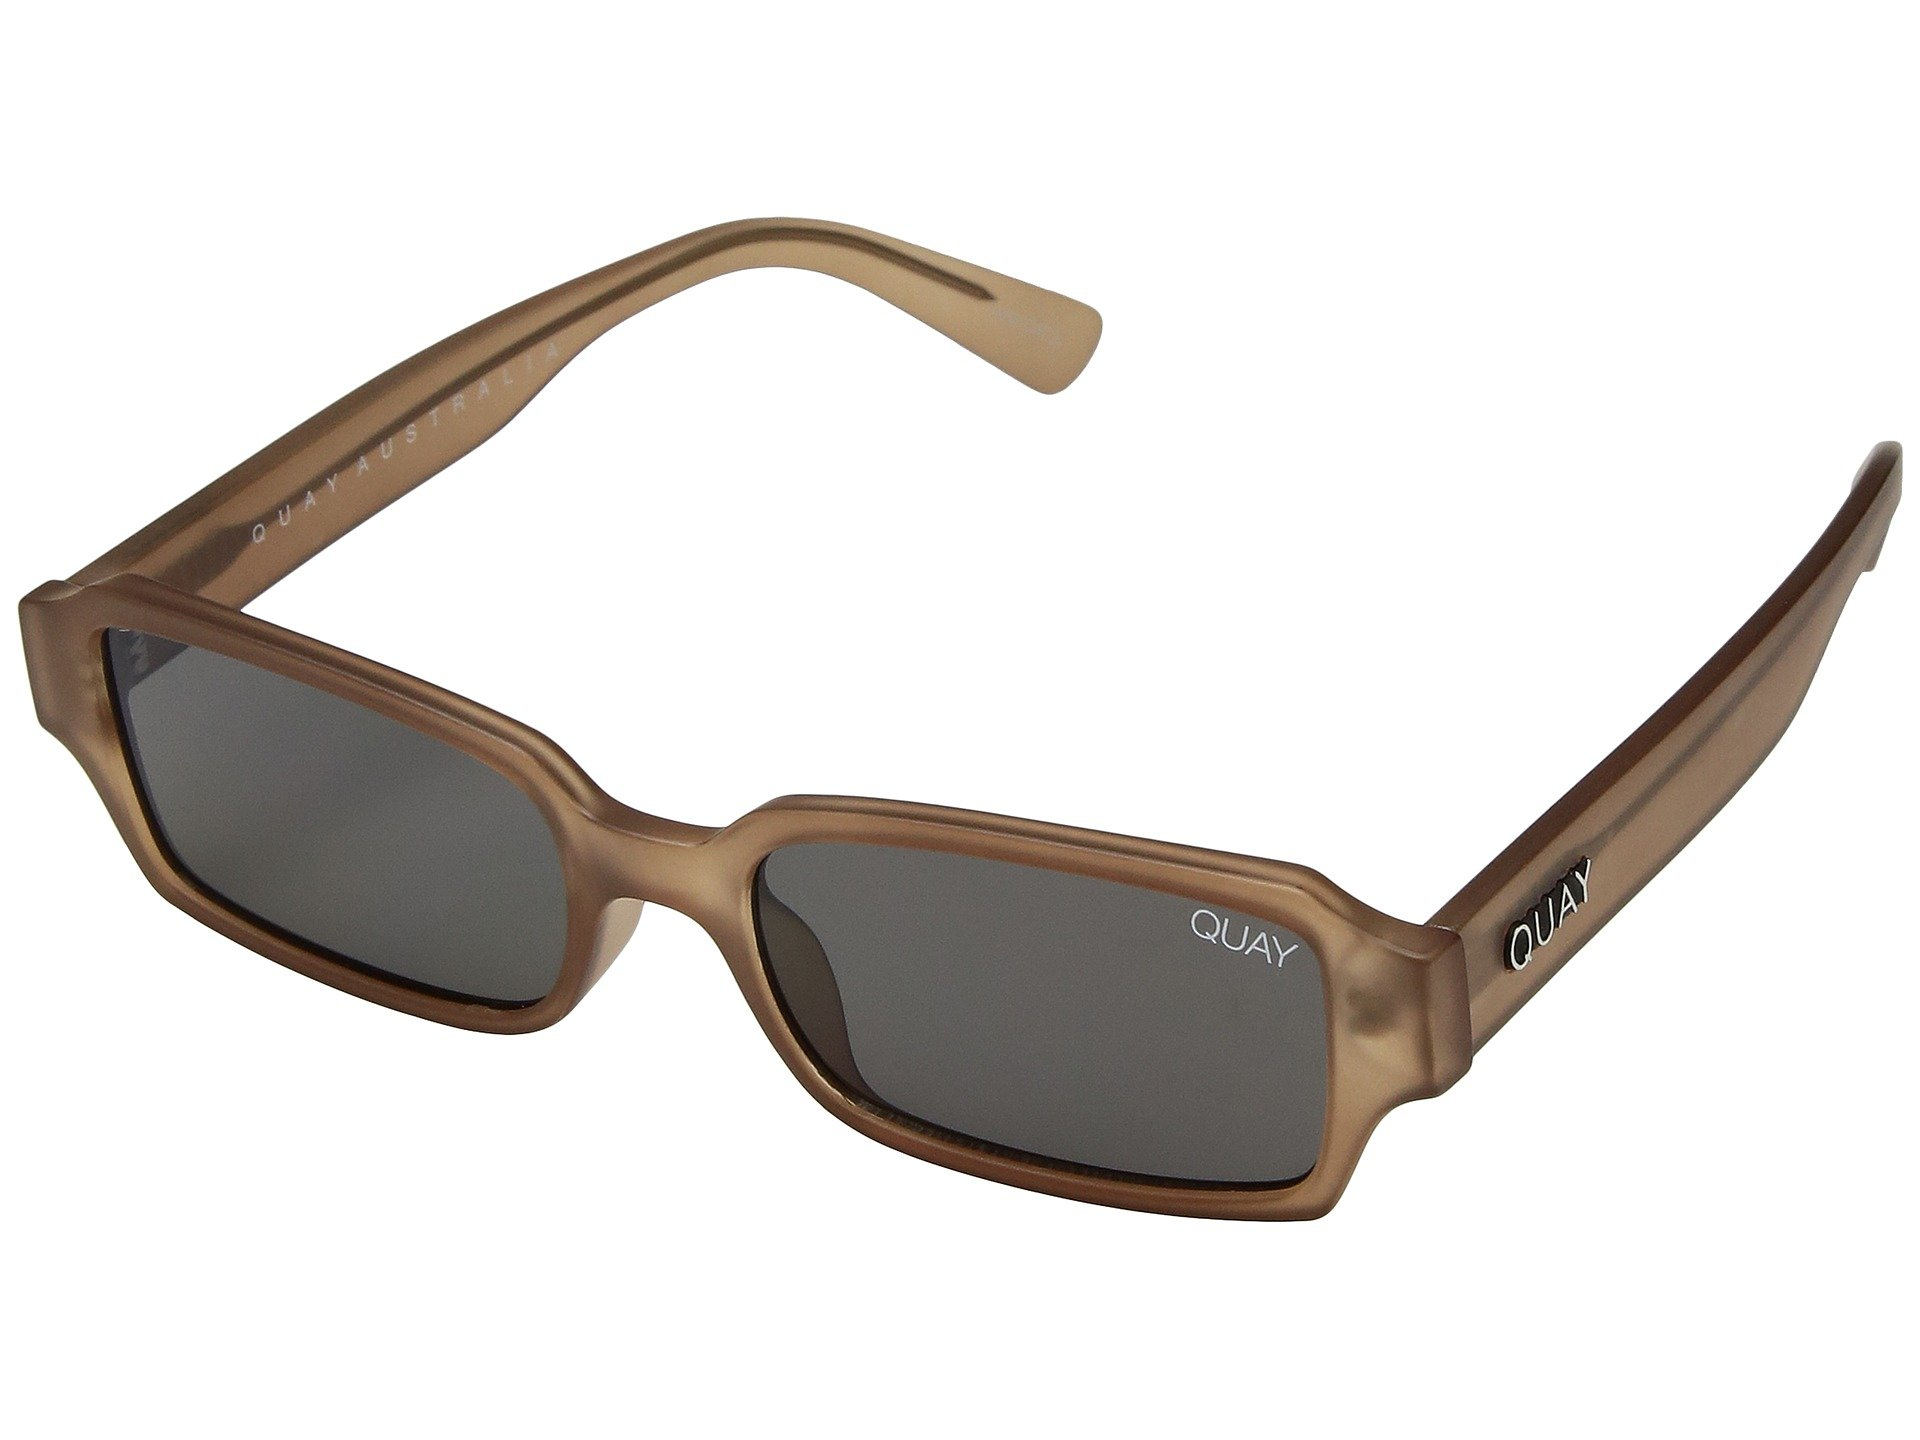 image of Quay Sunglasses